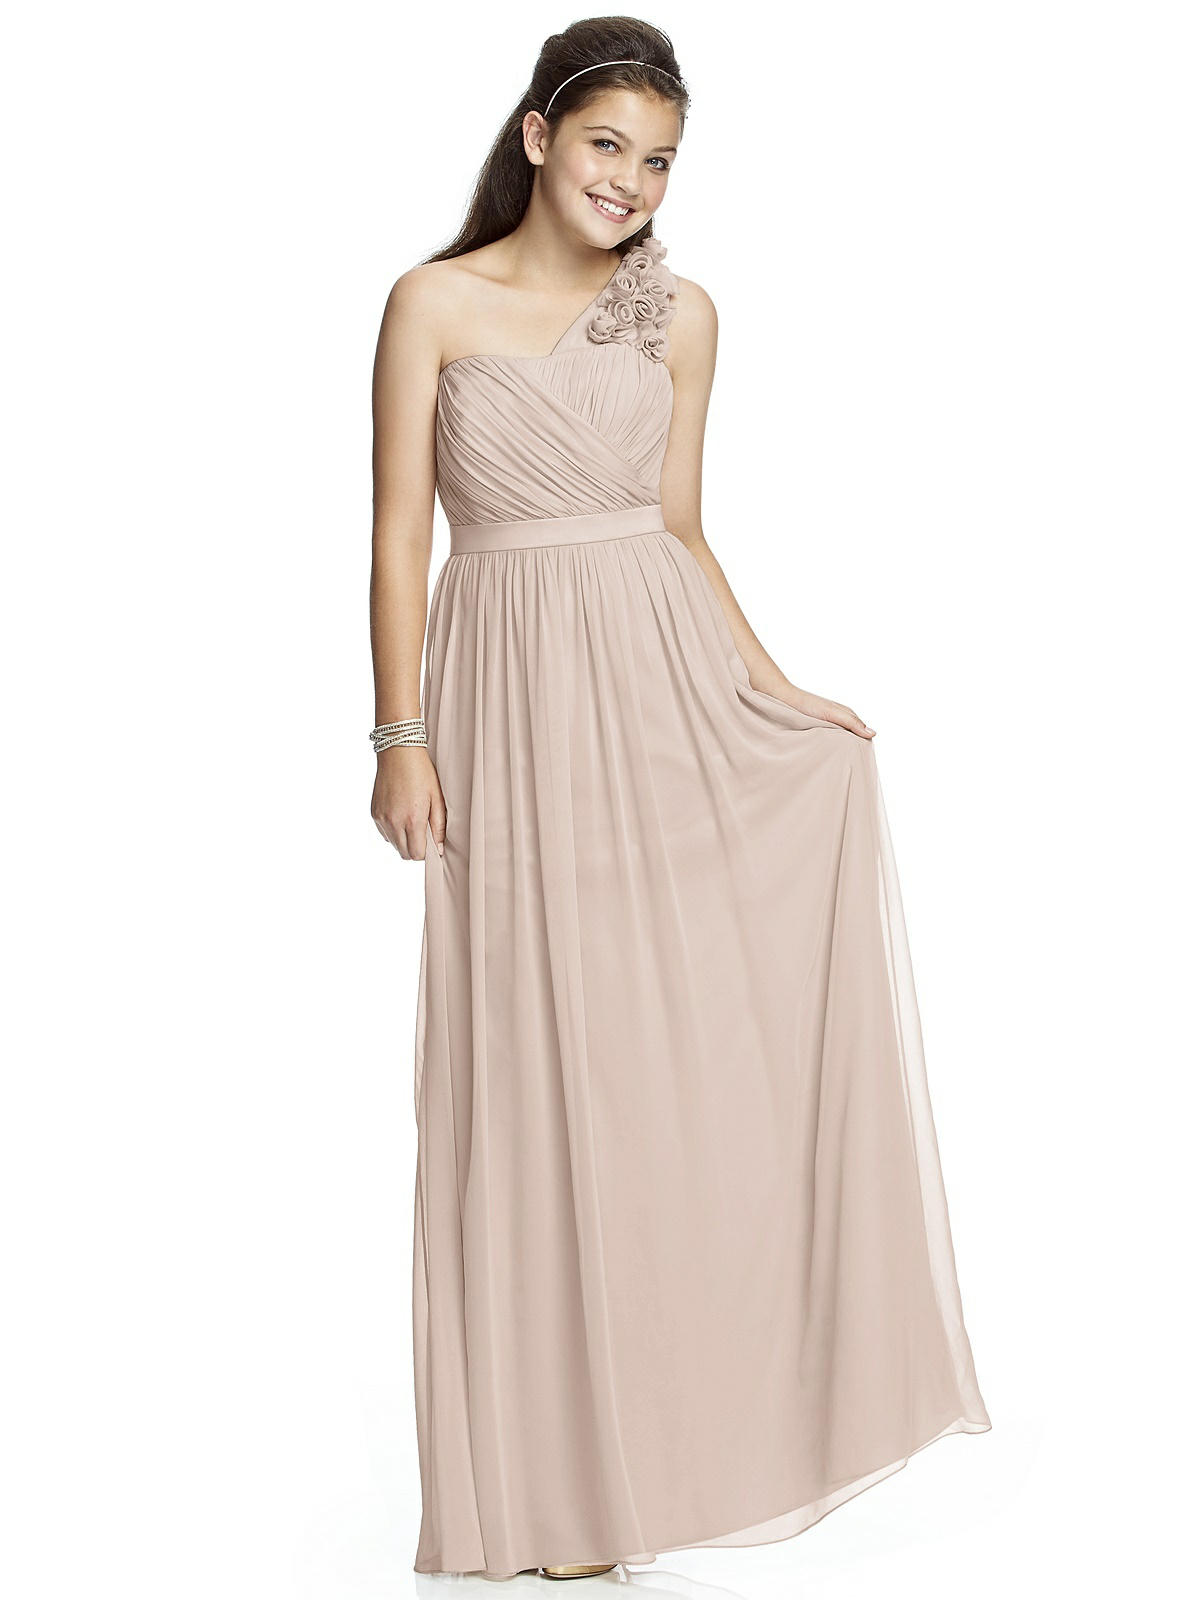 5 Kinds Of Junior Bridesmaid Dresses